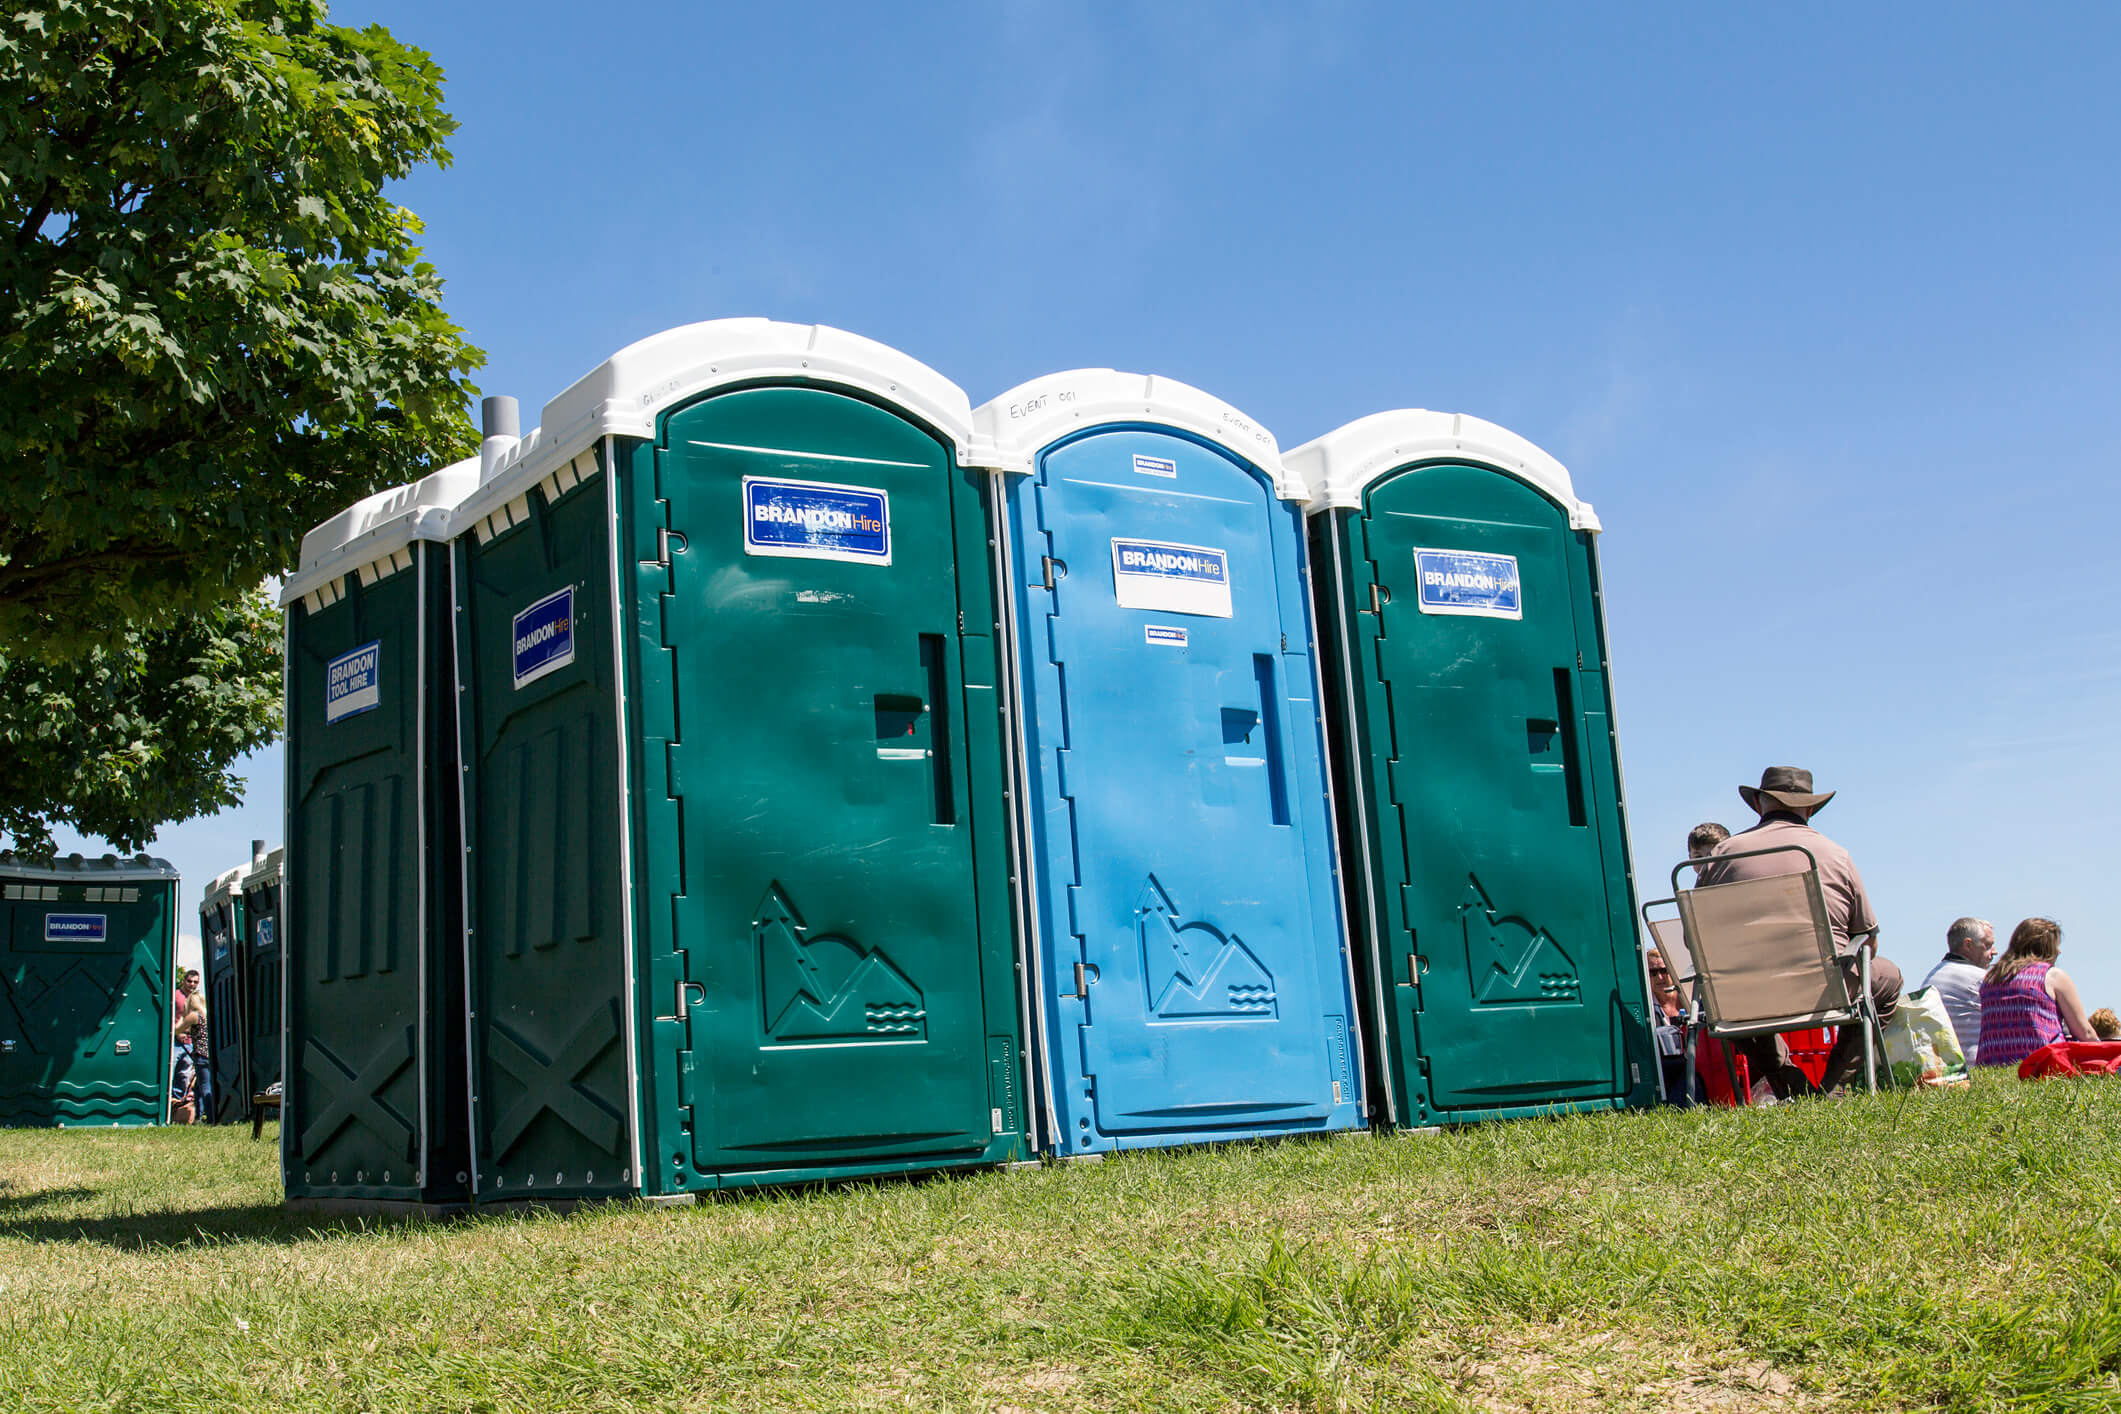 A necessity for any outdoor event, loo hire can be more glamourous than you might think!